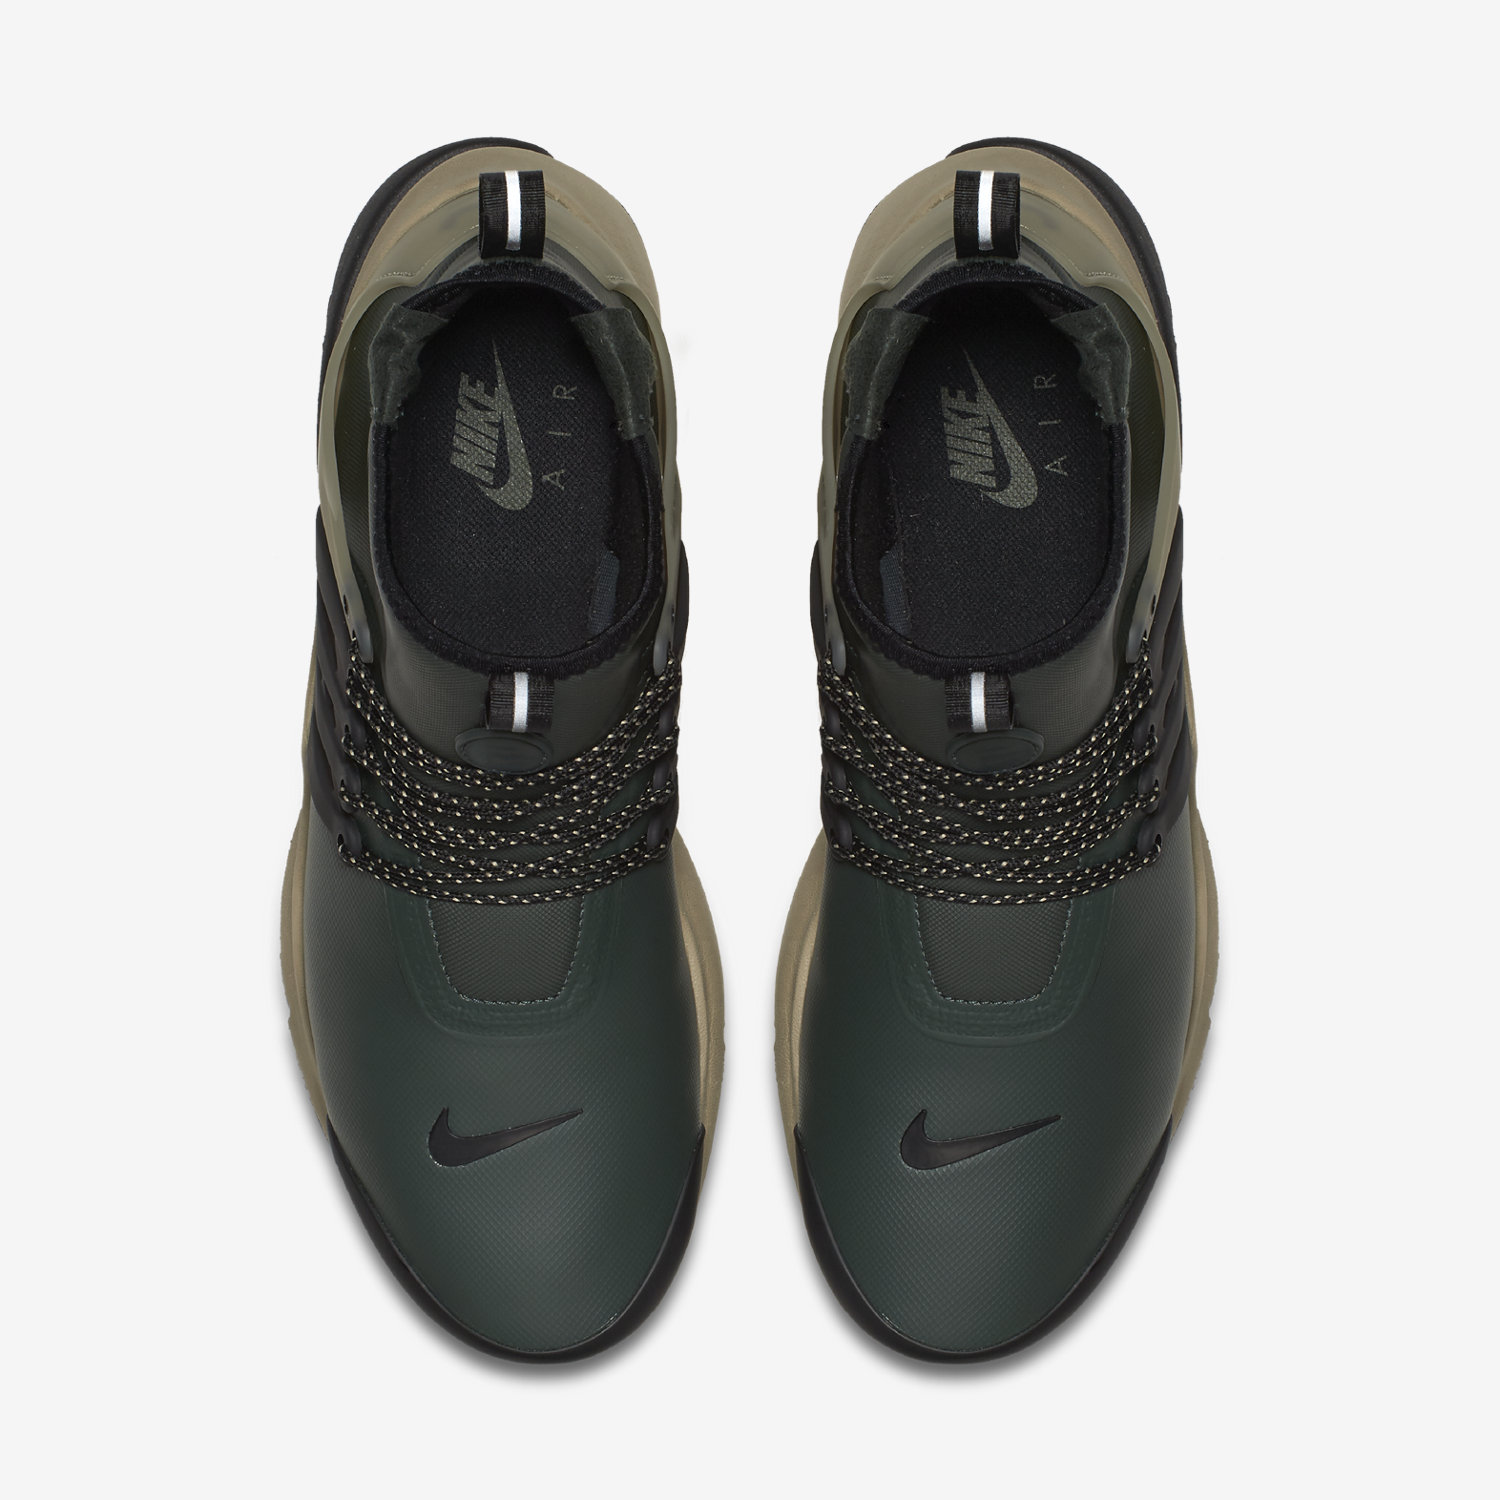 144aab6054 Nike Air Presto Mid Utility Grove Green Black-Khaki 859524-300. November 3